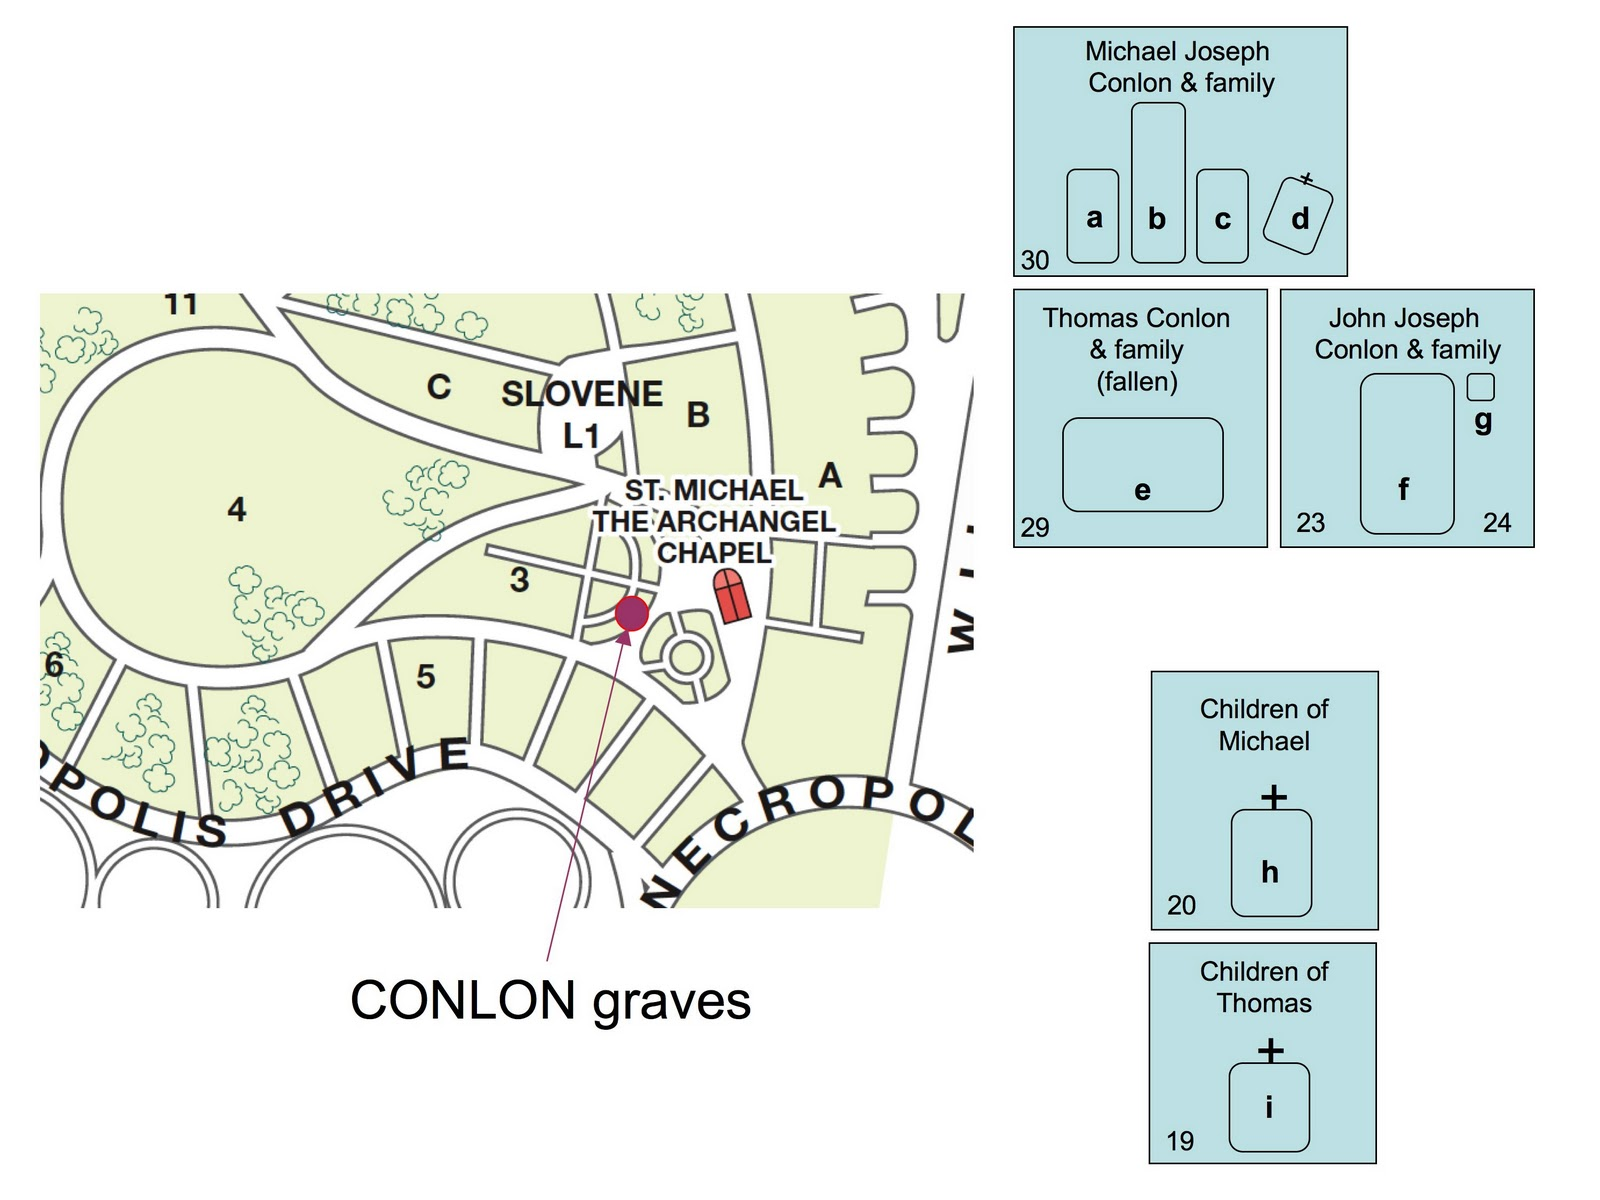 Rookwood Cemetery Map The History Of Matt: The CONLON plot at Rookwood Cemetery Rookwood Cemetery Map